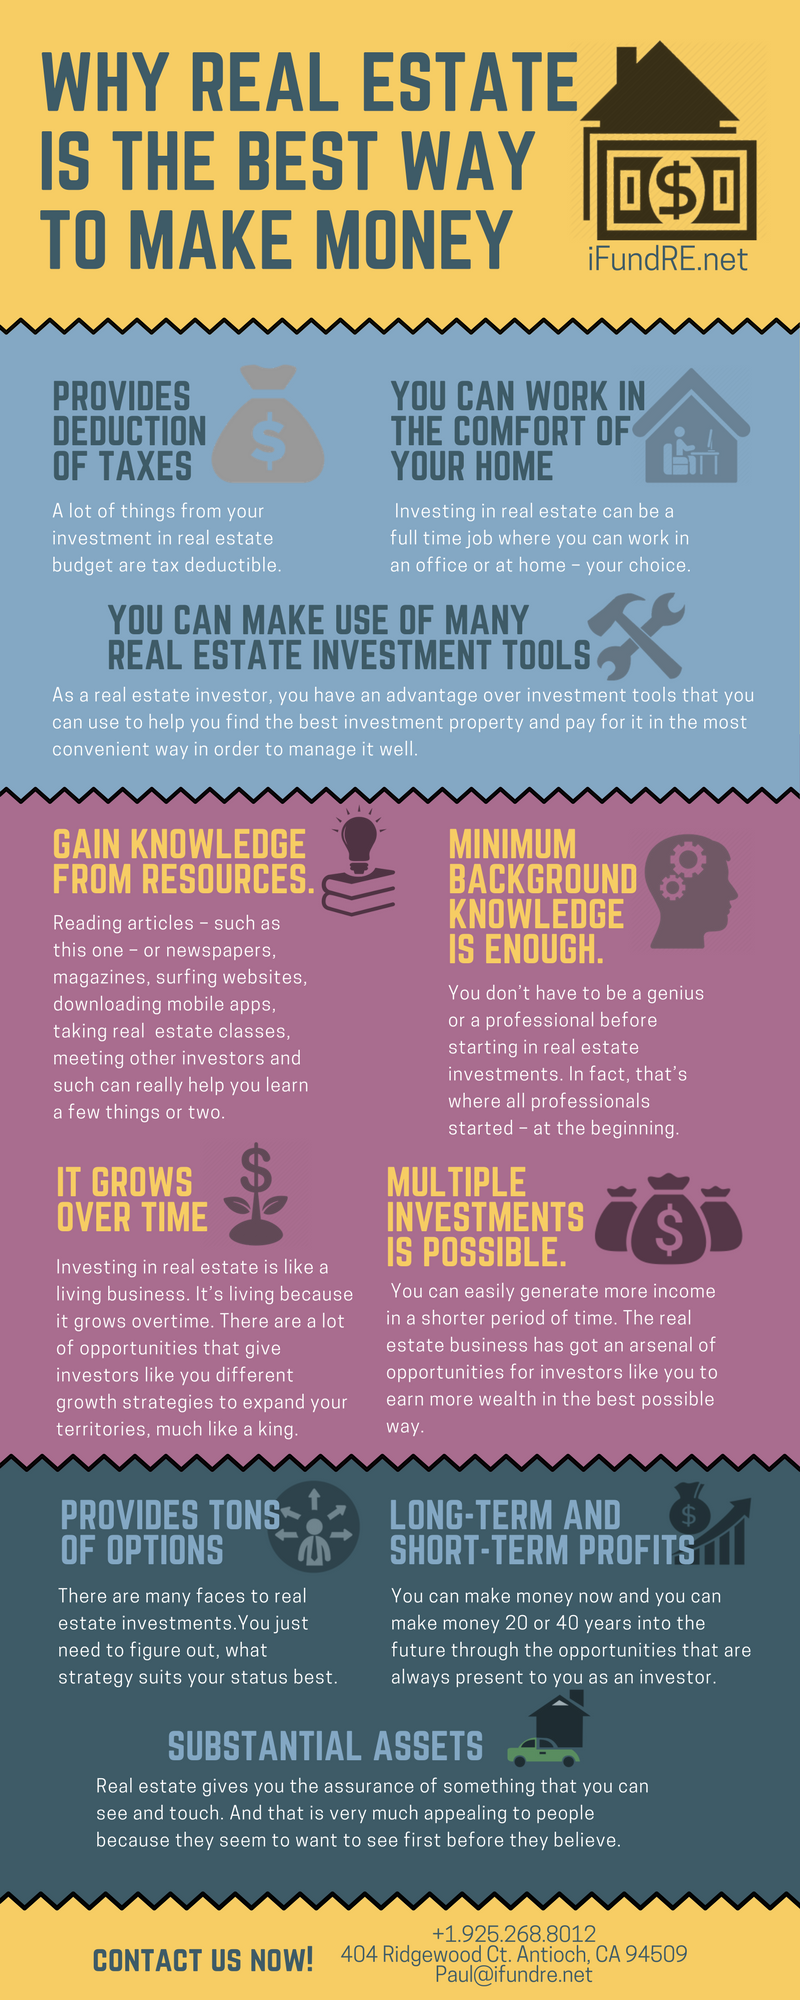 Real Estate: One Best Way to Make Money